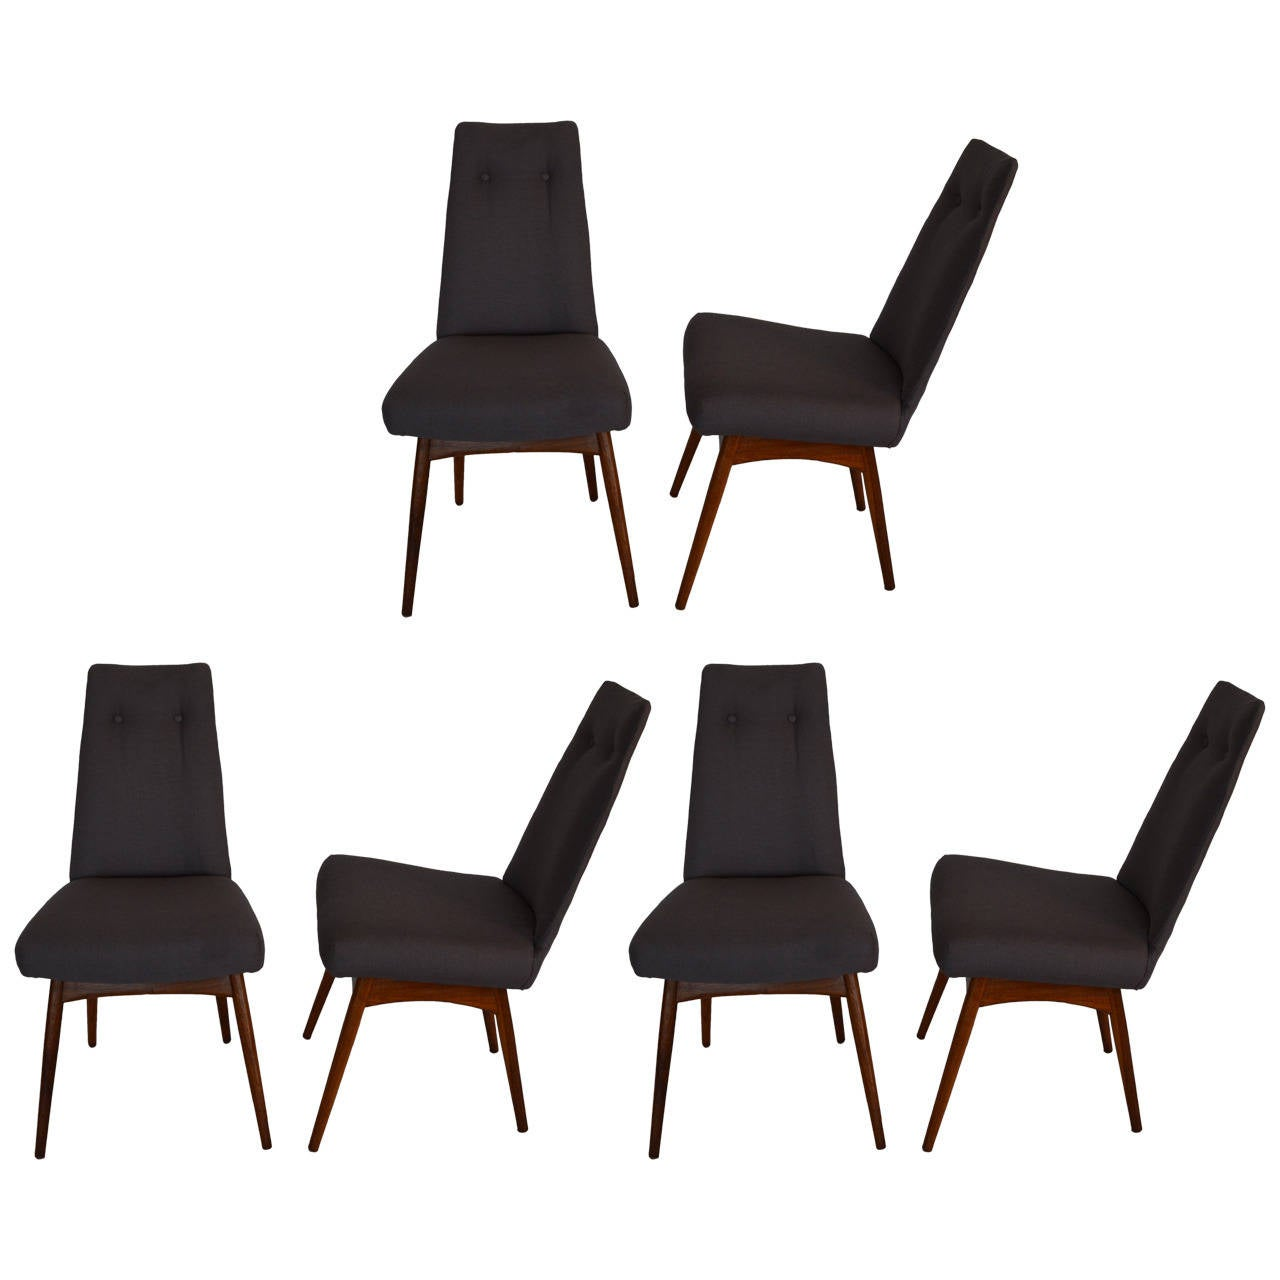 Mid Century Modern Adrian Pearsall S/6 Walnut & Linen Dining Chairs For Sale